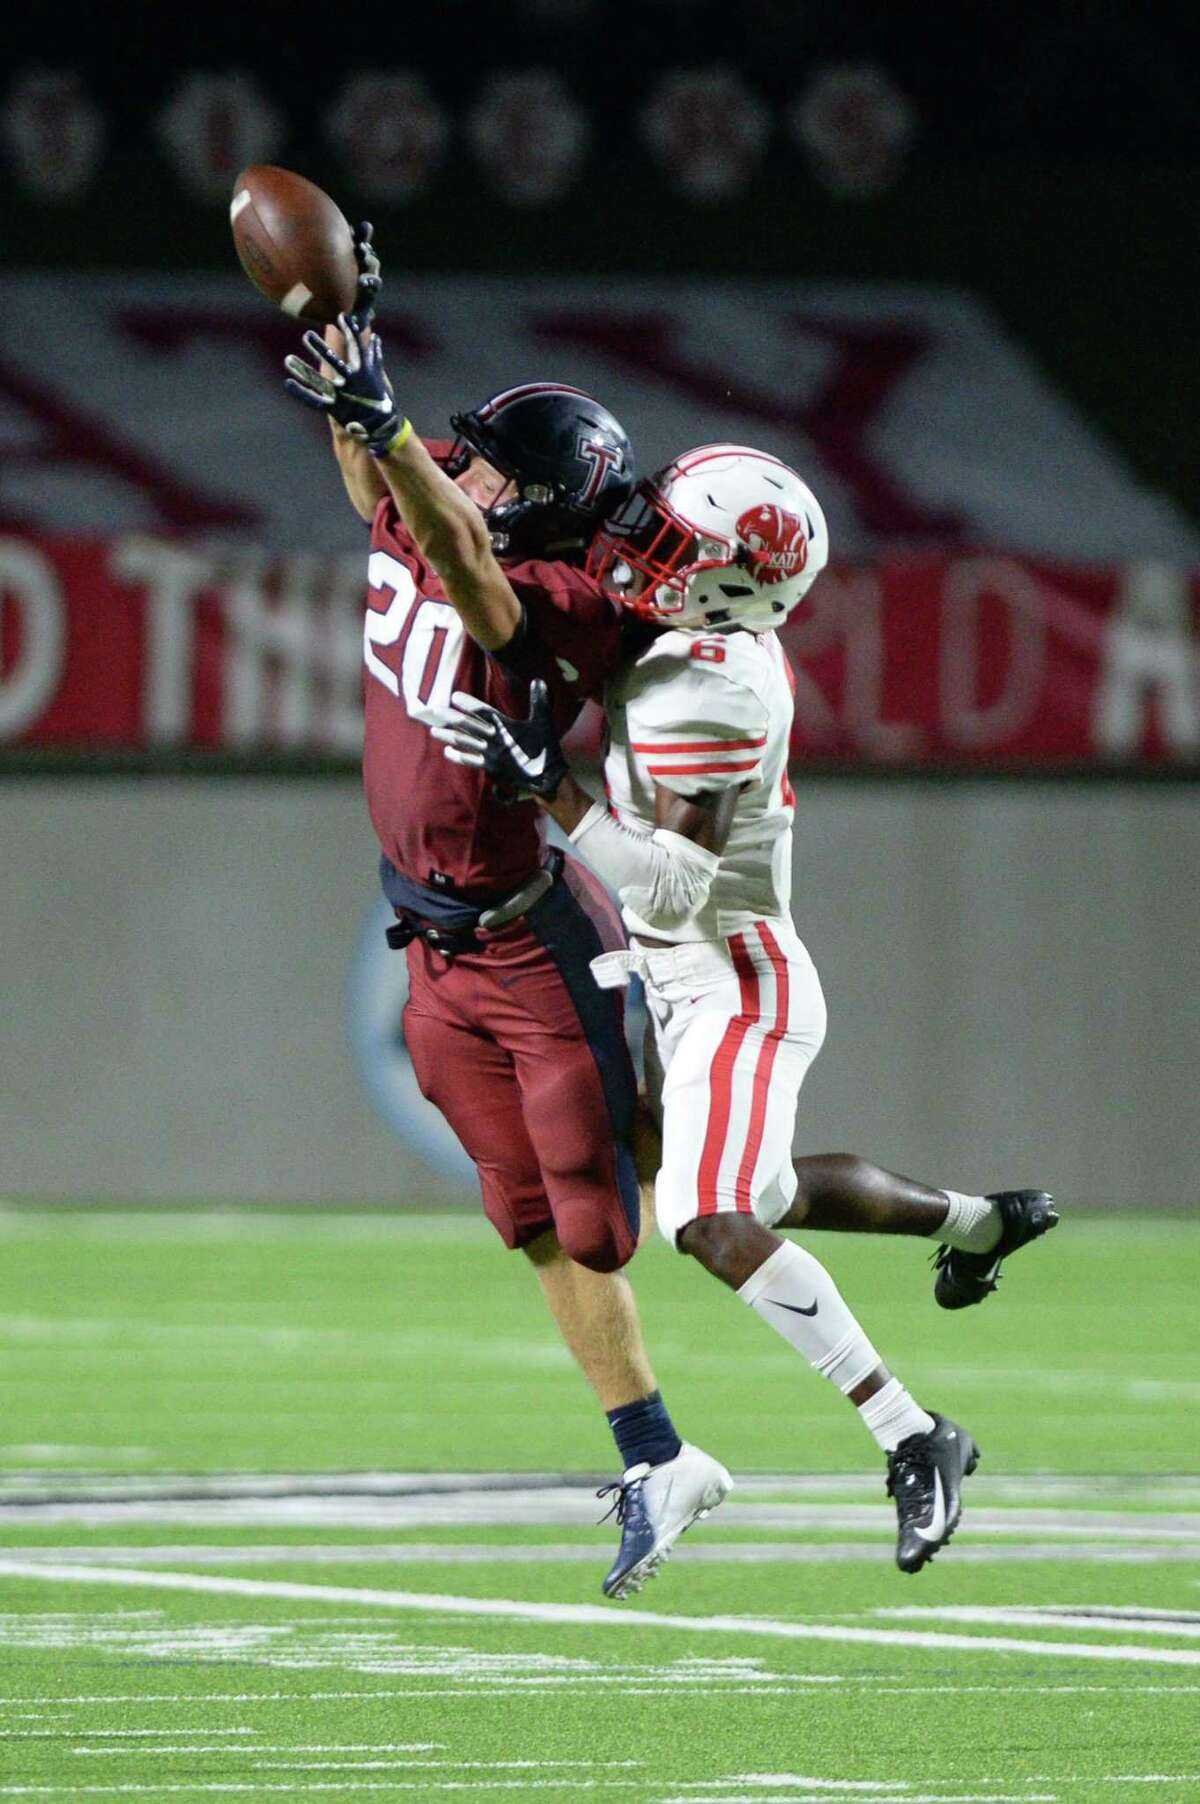 Bryan Massey (6) of Katy breaks up a pass intended for Garrett Mack (20) of Tompkins during the fourth quarter of a 6A Region III District 19 football game between the Katy Tigers and the Tompkins Falcons on Thursday, October 3, 2019 at Legacy Stadium, Katy, TX.